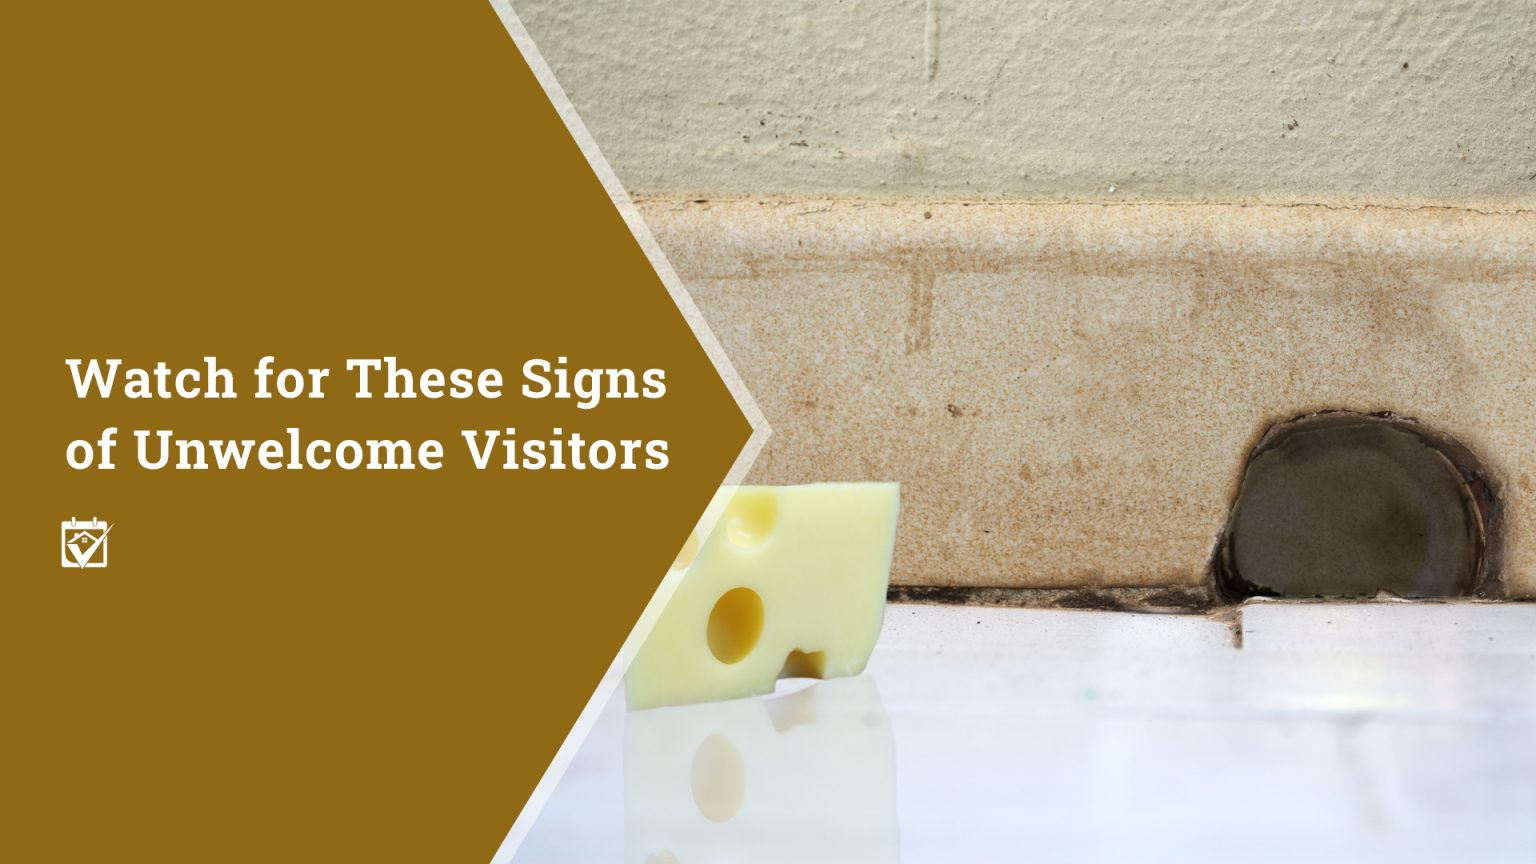 Watch for These Signs of Unwelcome Visitors